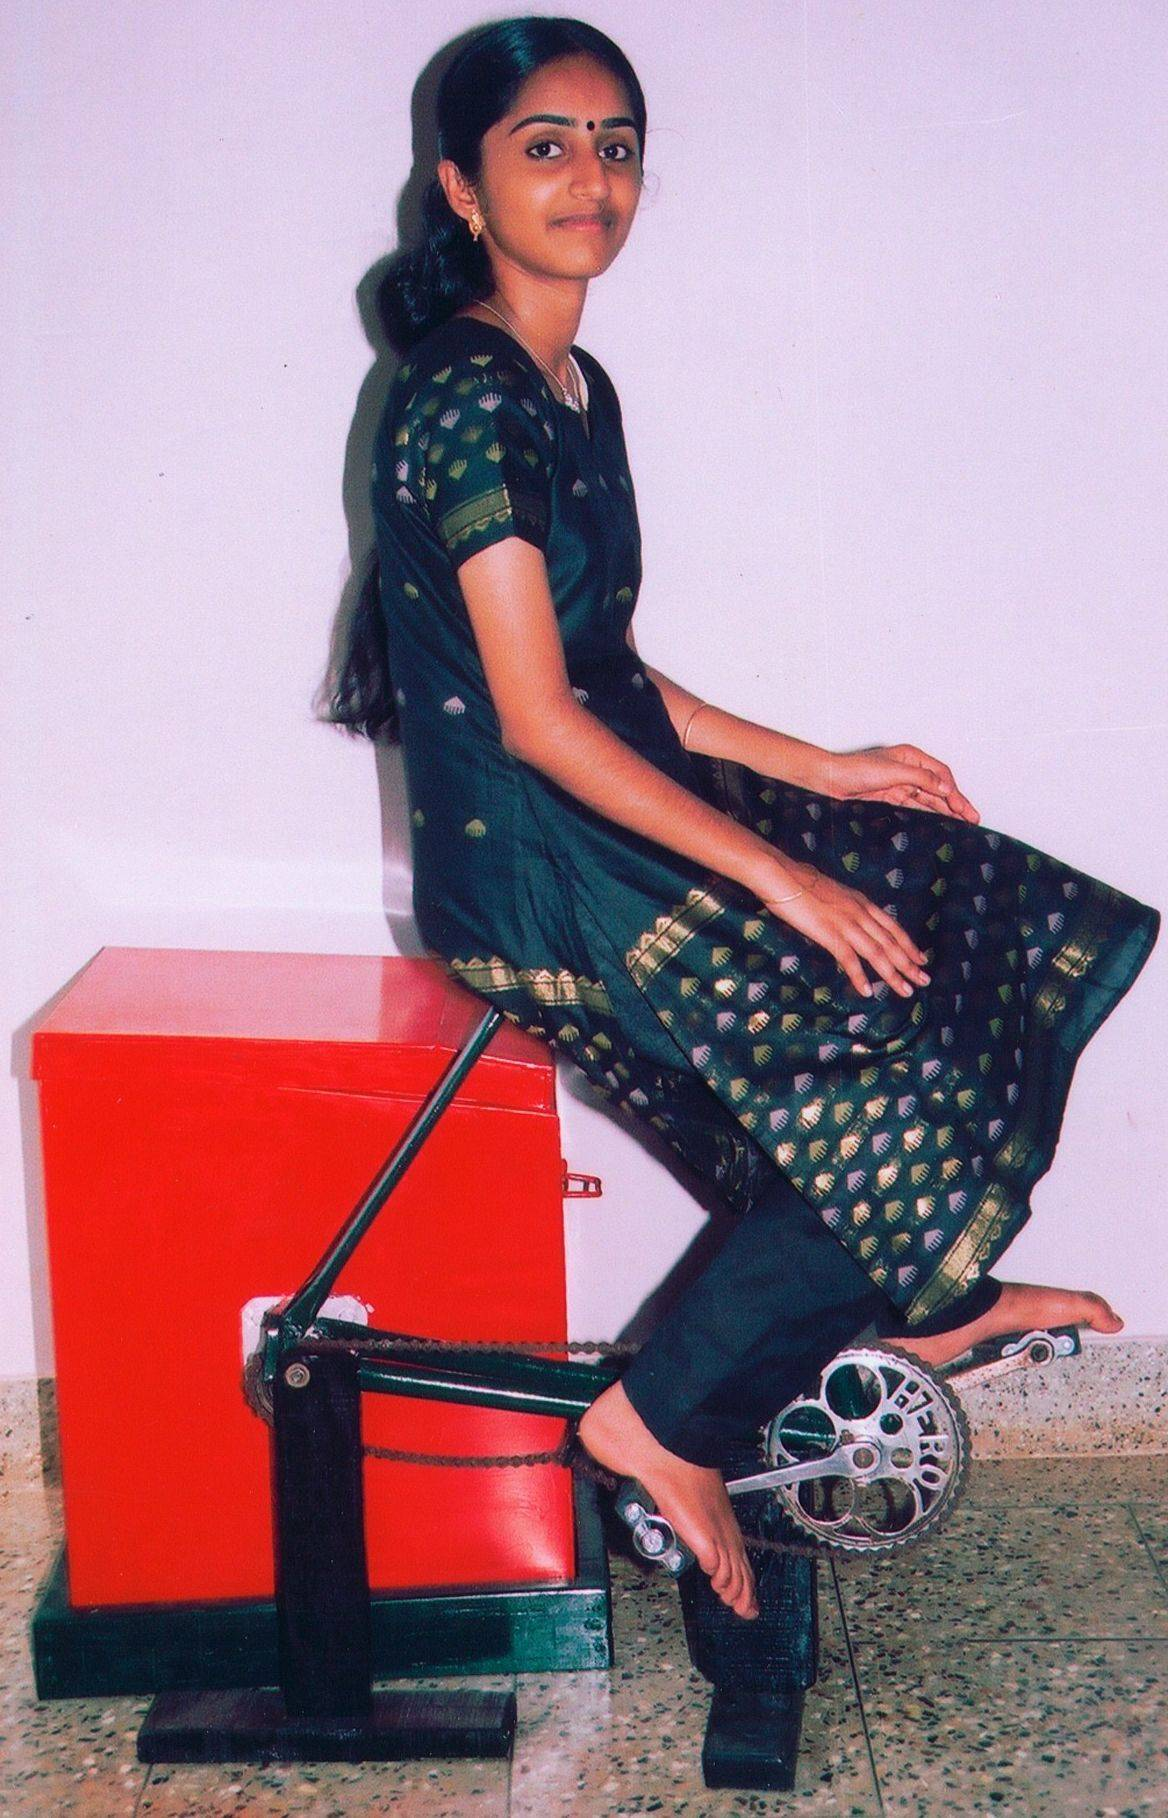 Remya Jose of India demonstrates the pedal-powered washing machine she invented. She was forced to do laundry by hand when her mother became sick because her family had no washing machine. So she invented a washing machine/exercise bike that is cheap to make and requires no electricity.